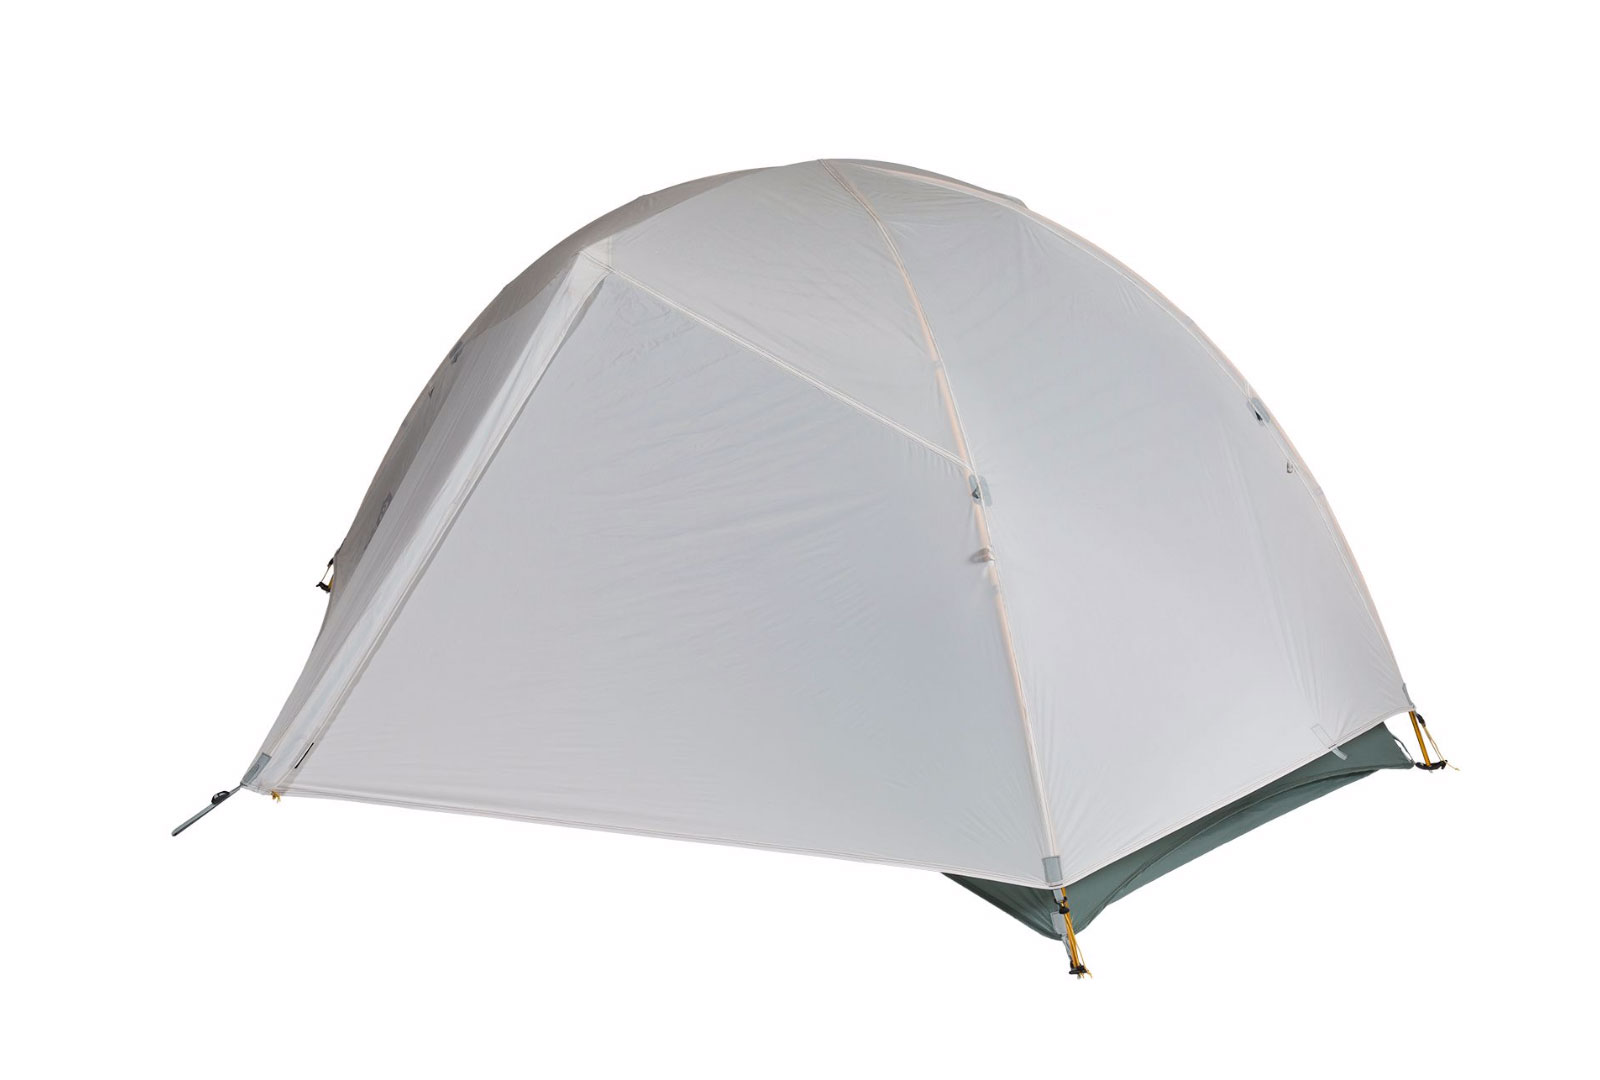 ghost sky 3 tent review